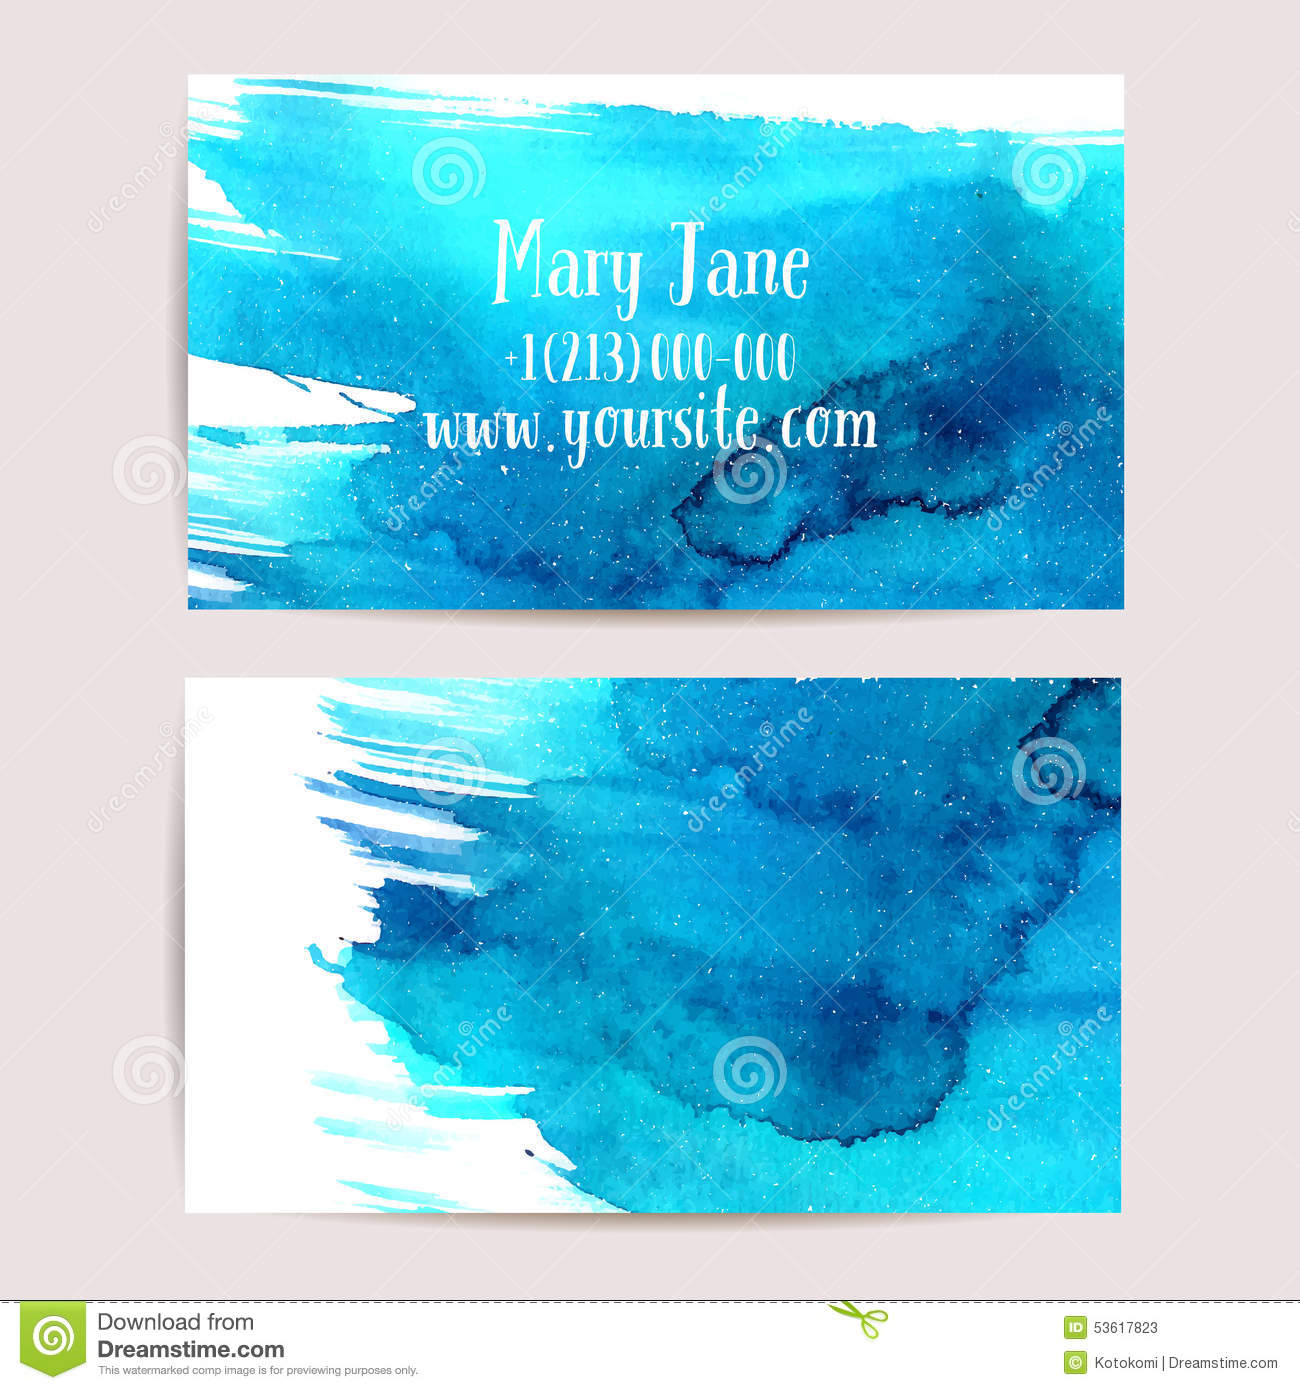 watercolor business card template stock vector  image: 49629121